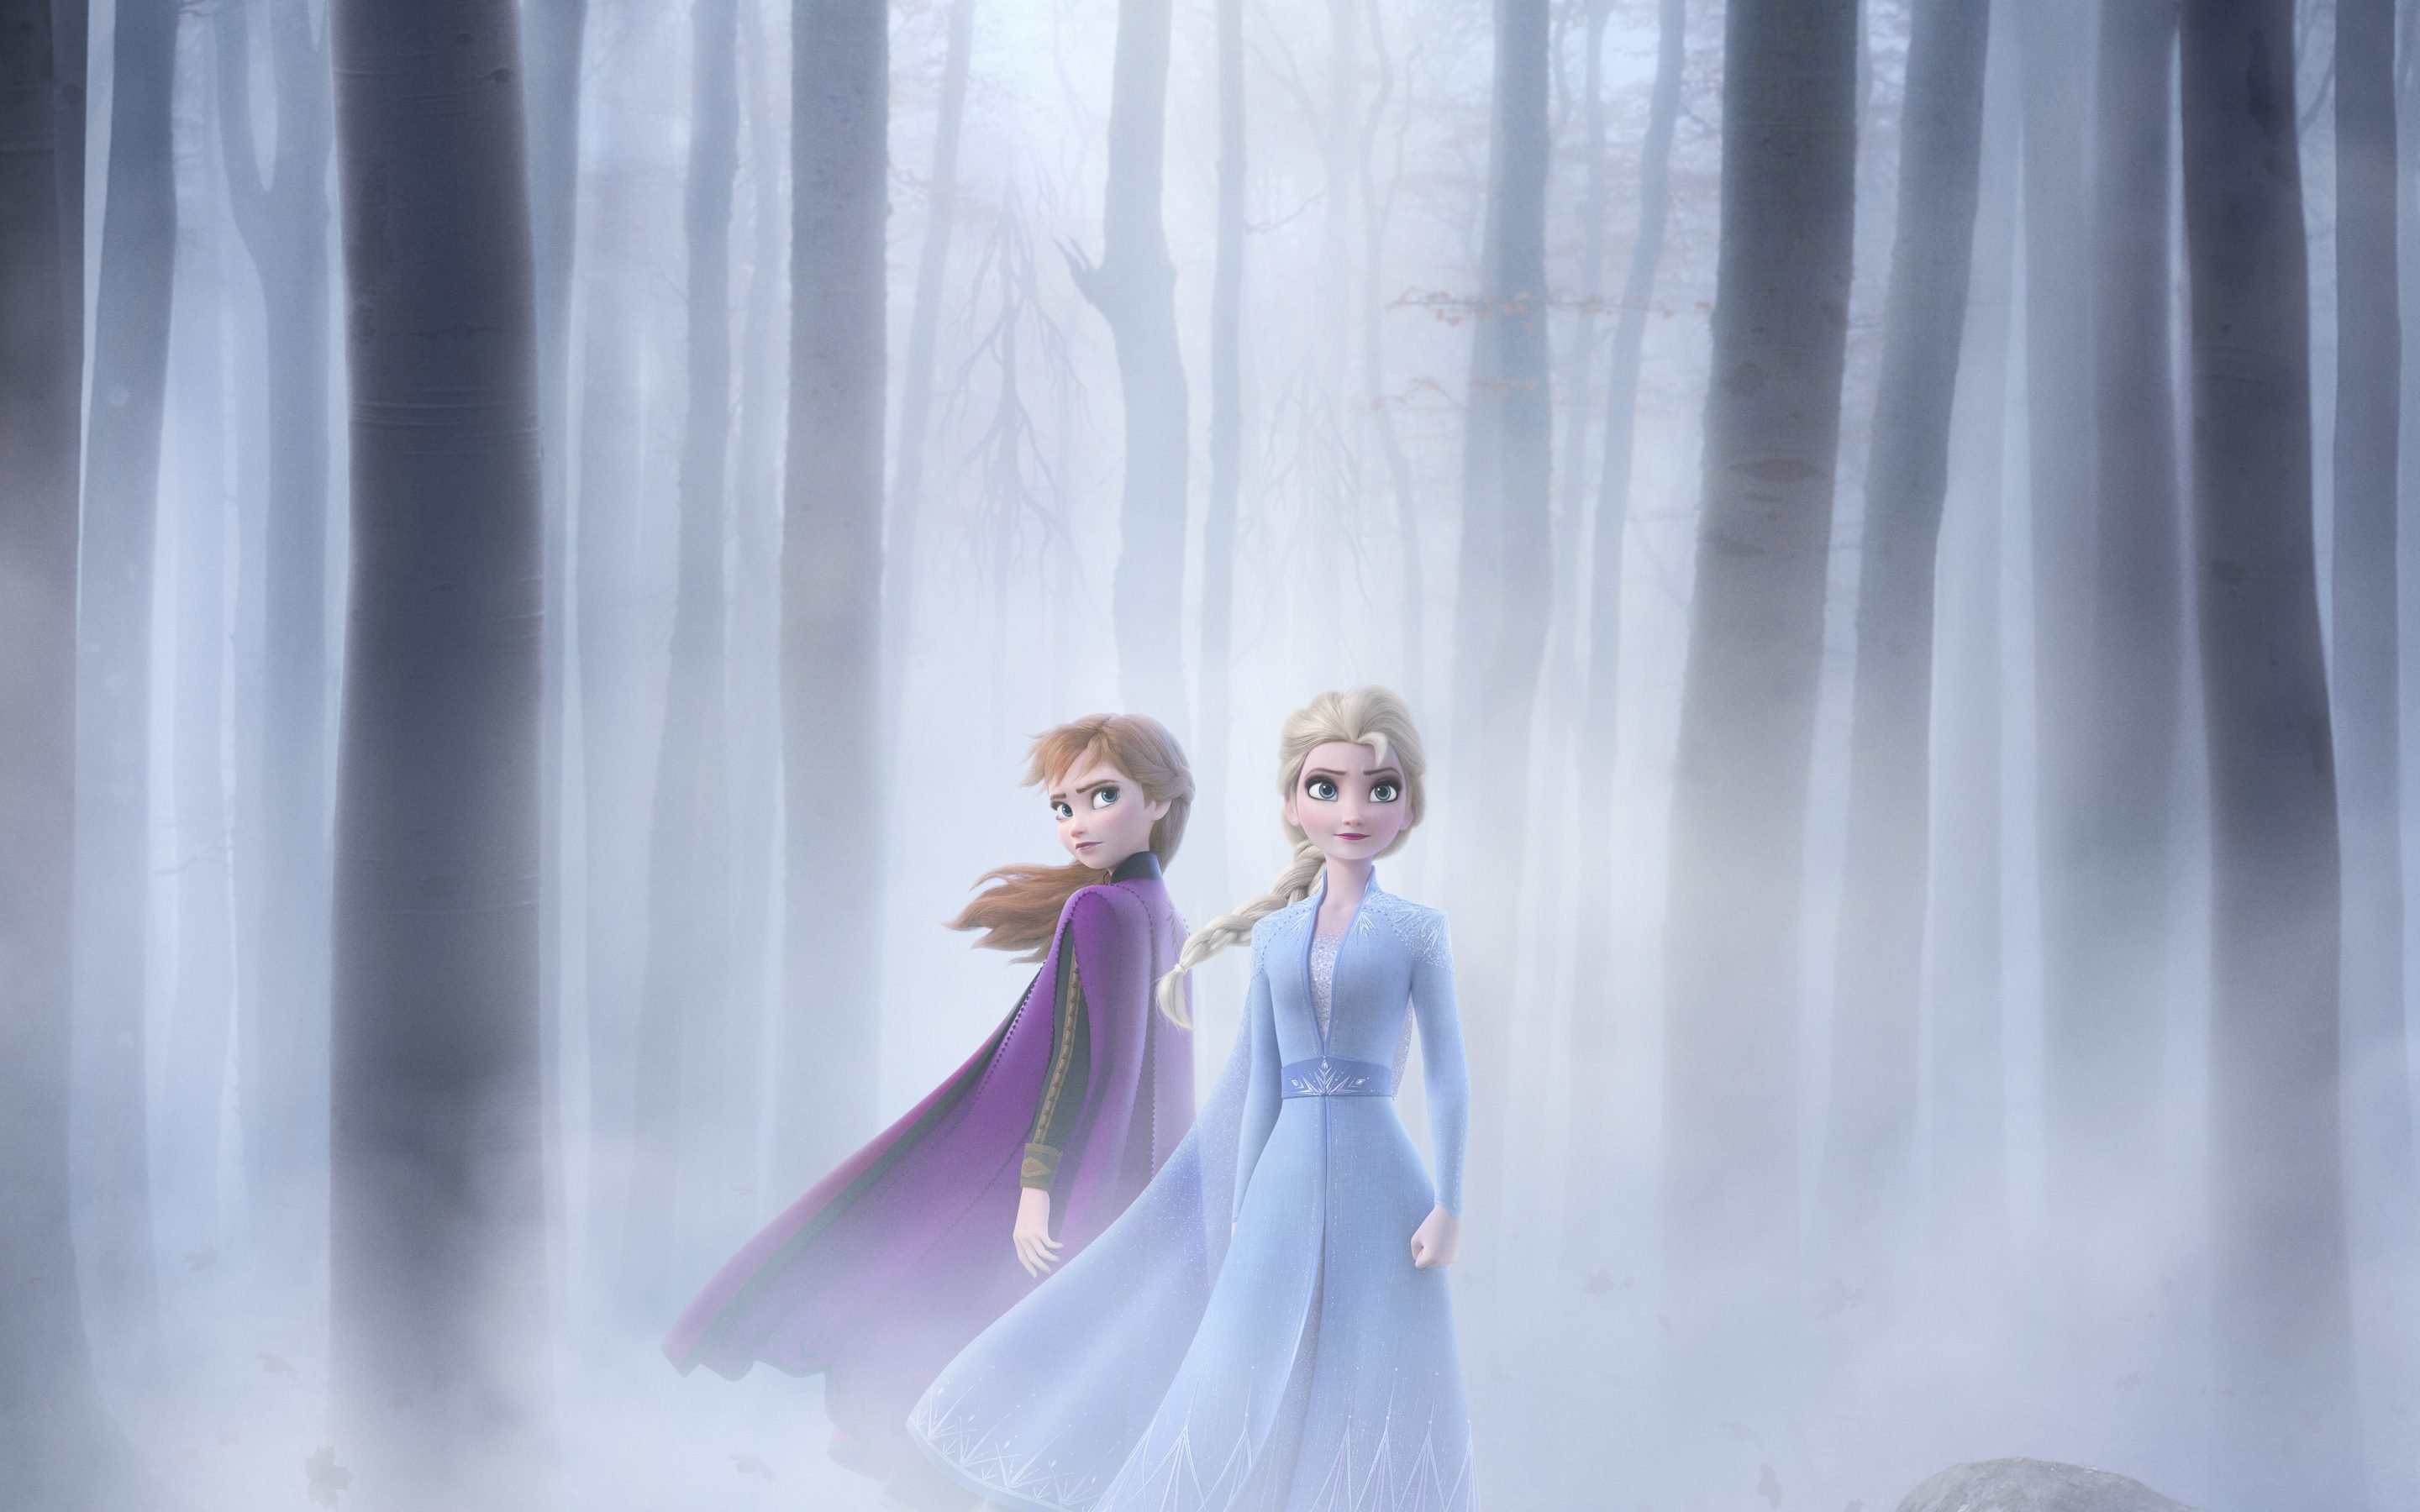 Disney Frozen 2 NEW TRAILER – Elsa and Anna's Wild Journey